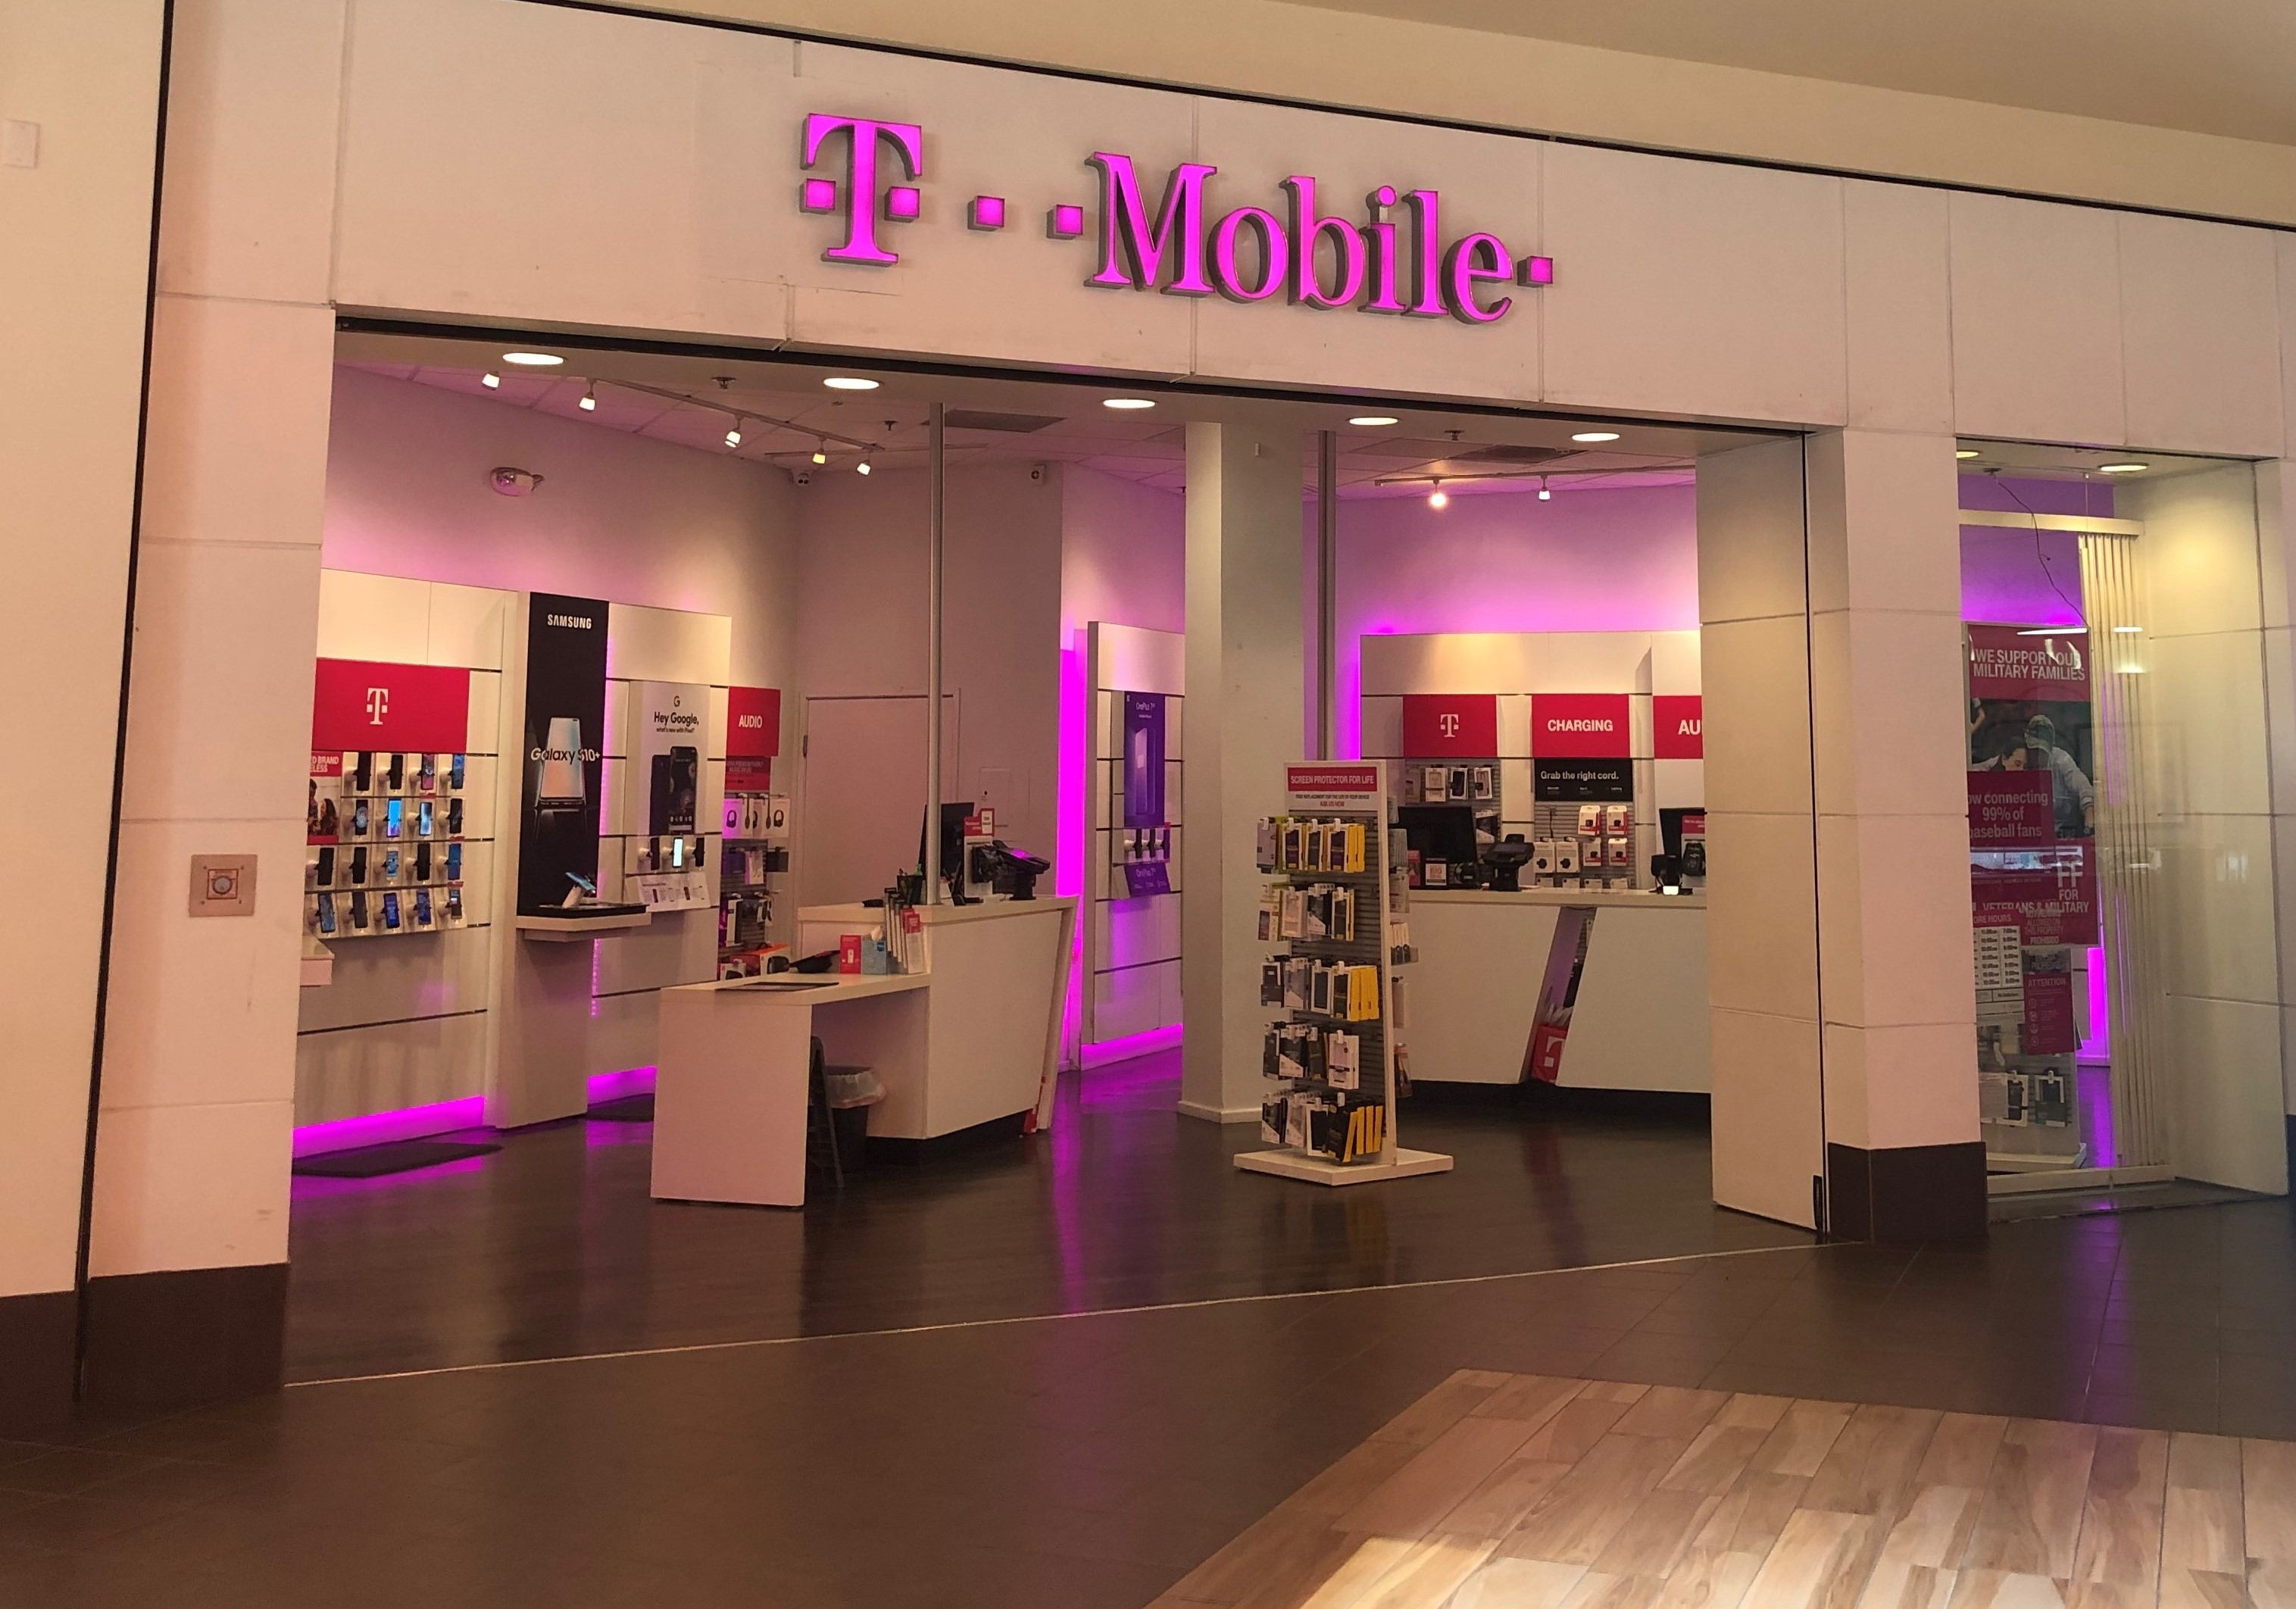 Cell Phones Plans And Accessories At T Mobile 2200 W Florida Ave